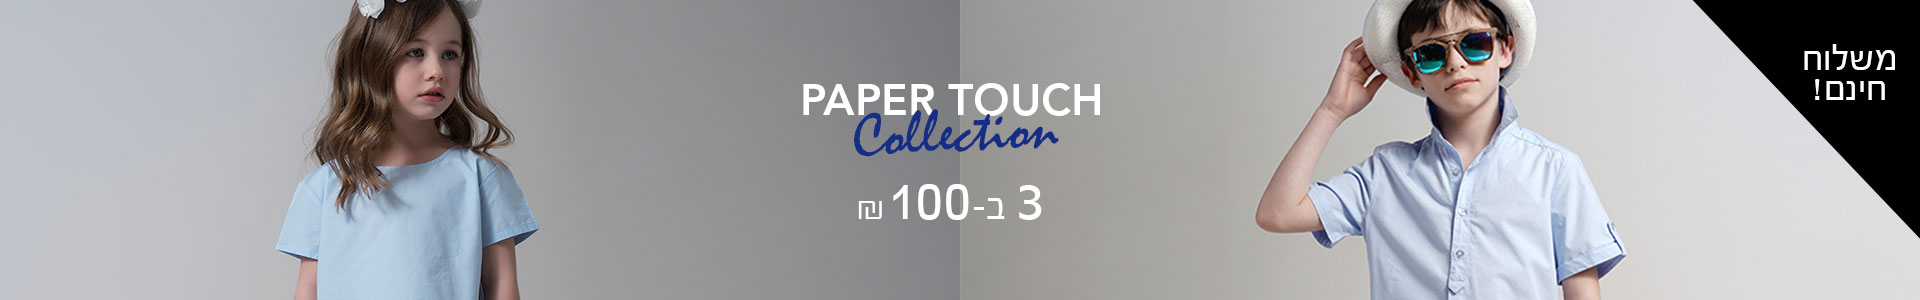 paper touch